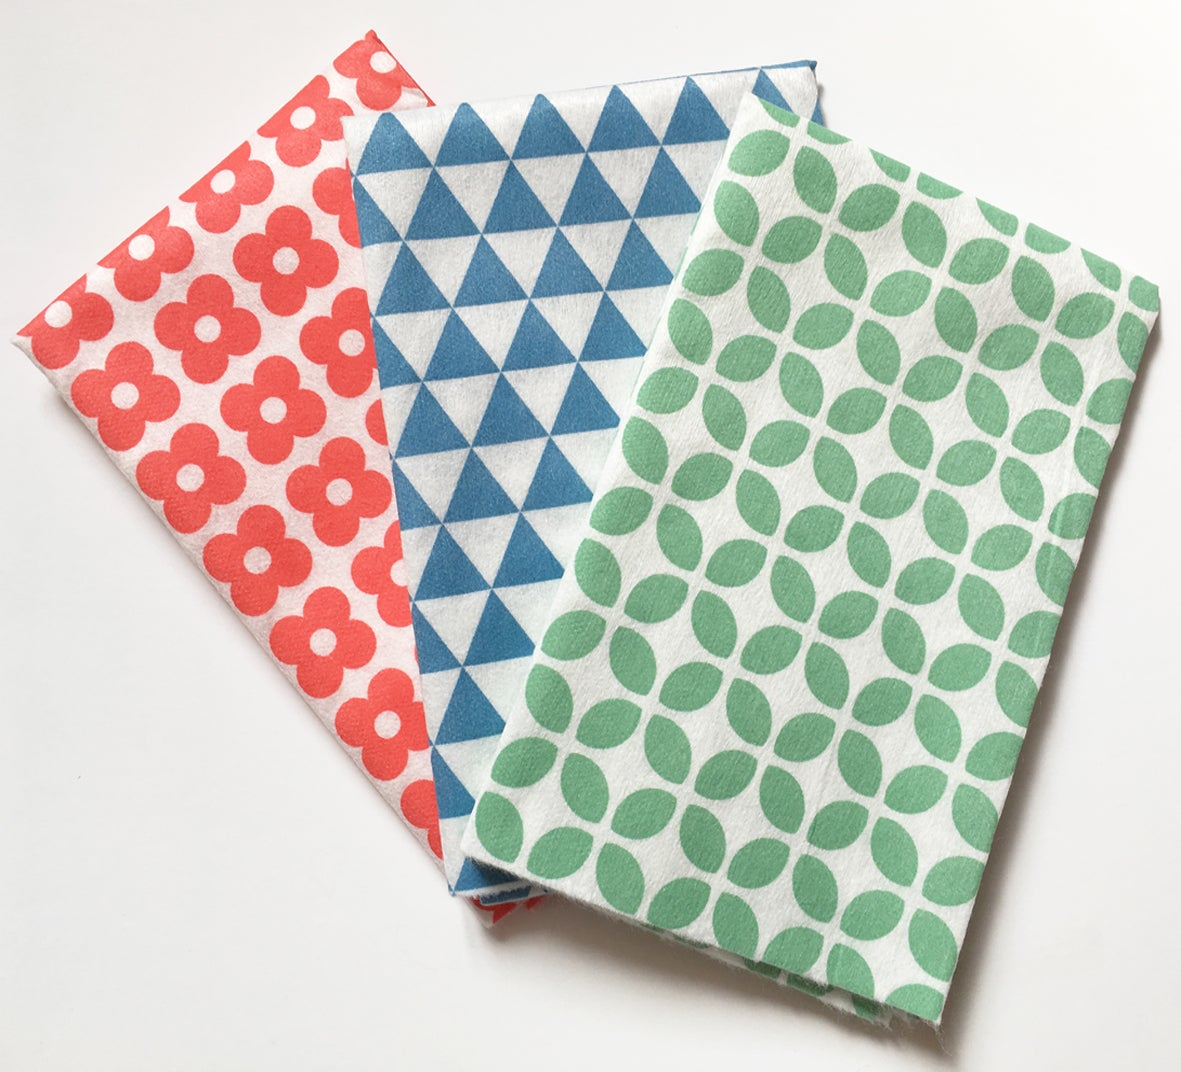 Image of Sustainable Mixed Pattern Ultra Absorbent Cloths - 24 Cloths (8 Red+8 Blue+8 Green)